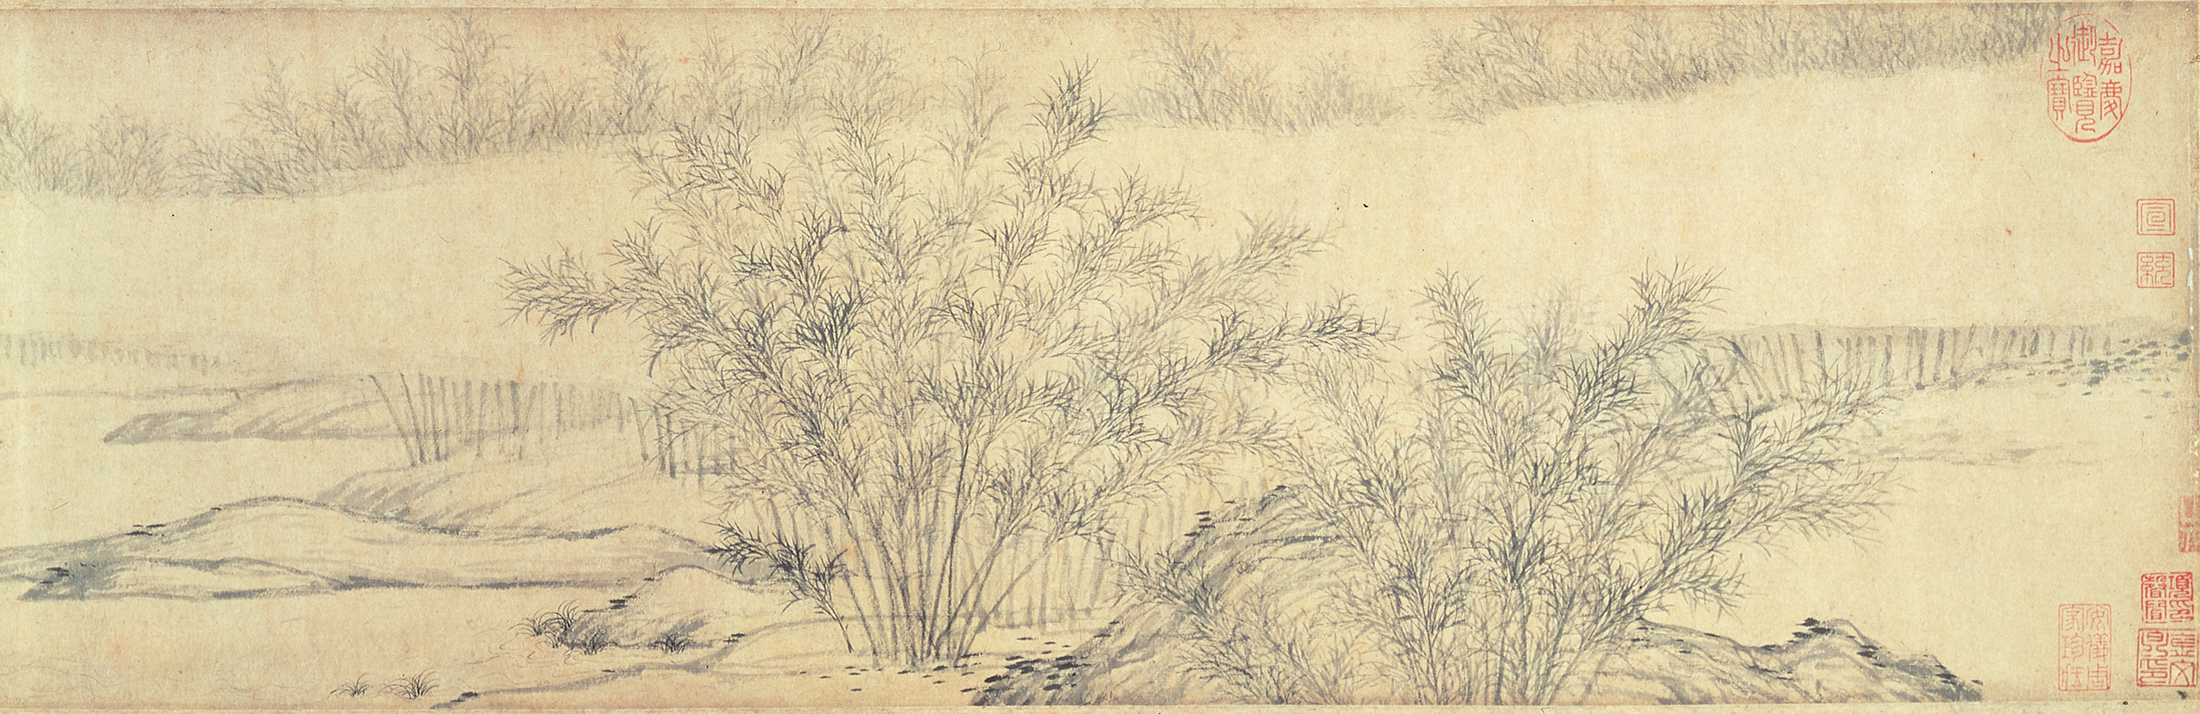 Bamboo_Groves_in_Mist_and_Rain